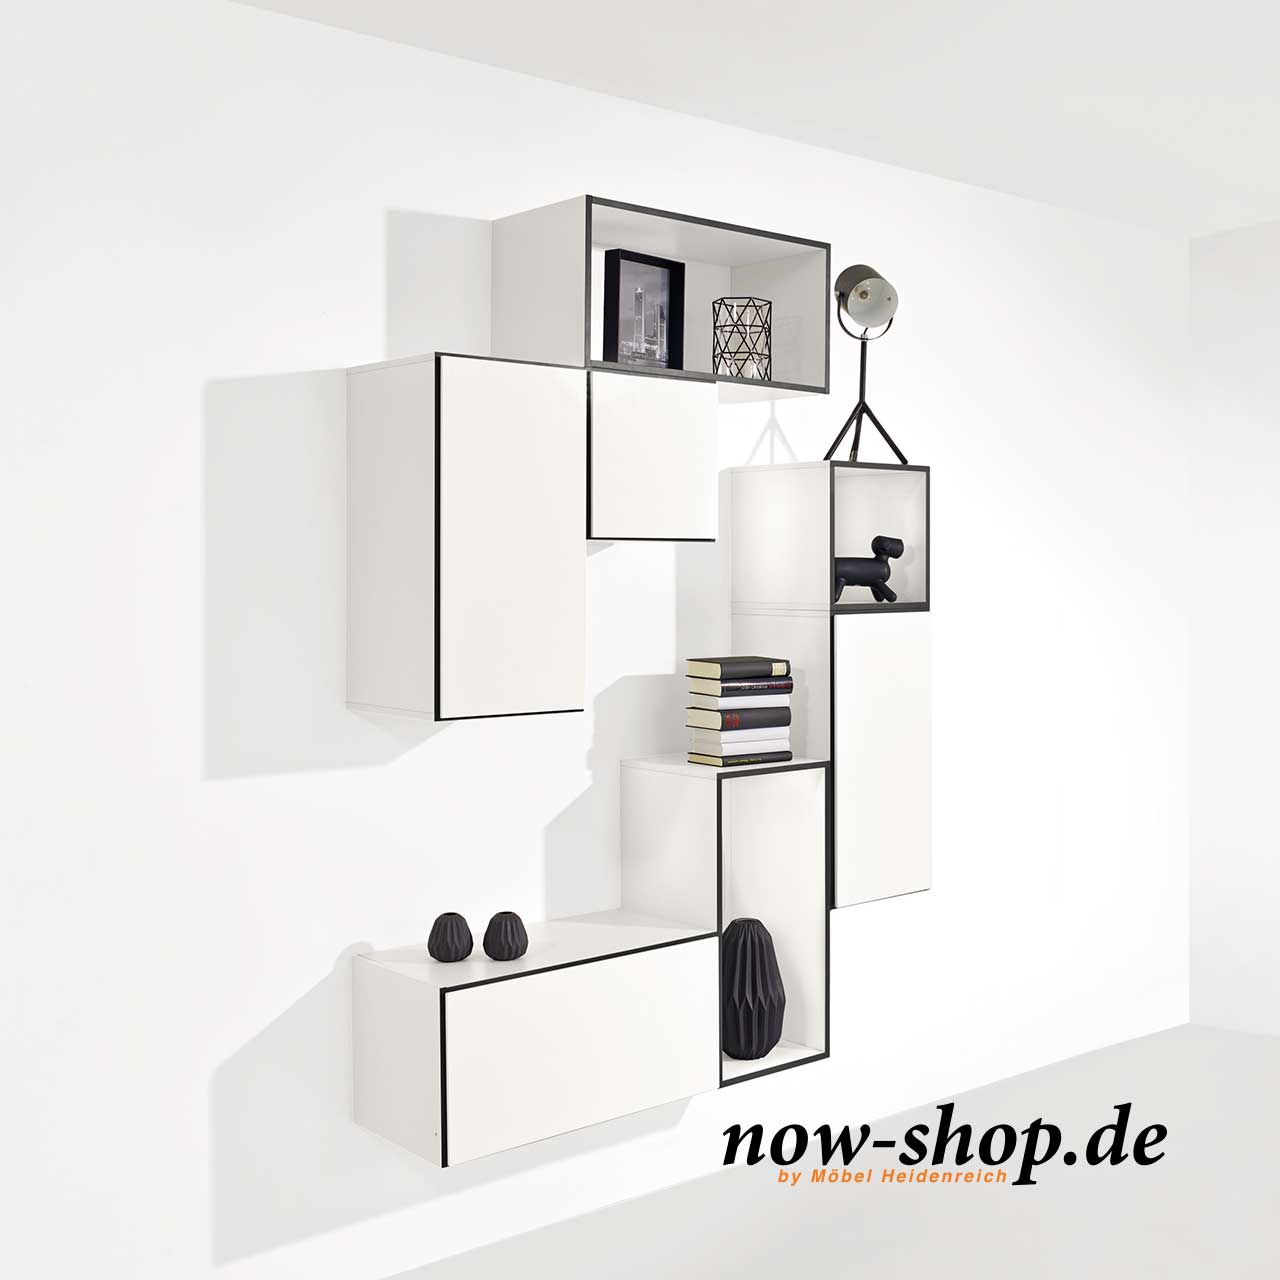 h lsta now vitrinen online kaufen now shop. Black Bedroom Furniture Sets. Home Design Ideas